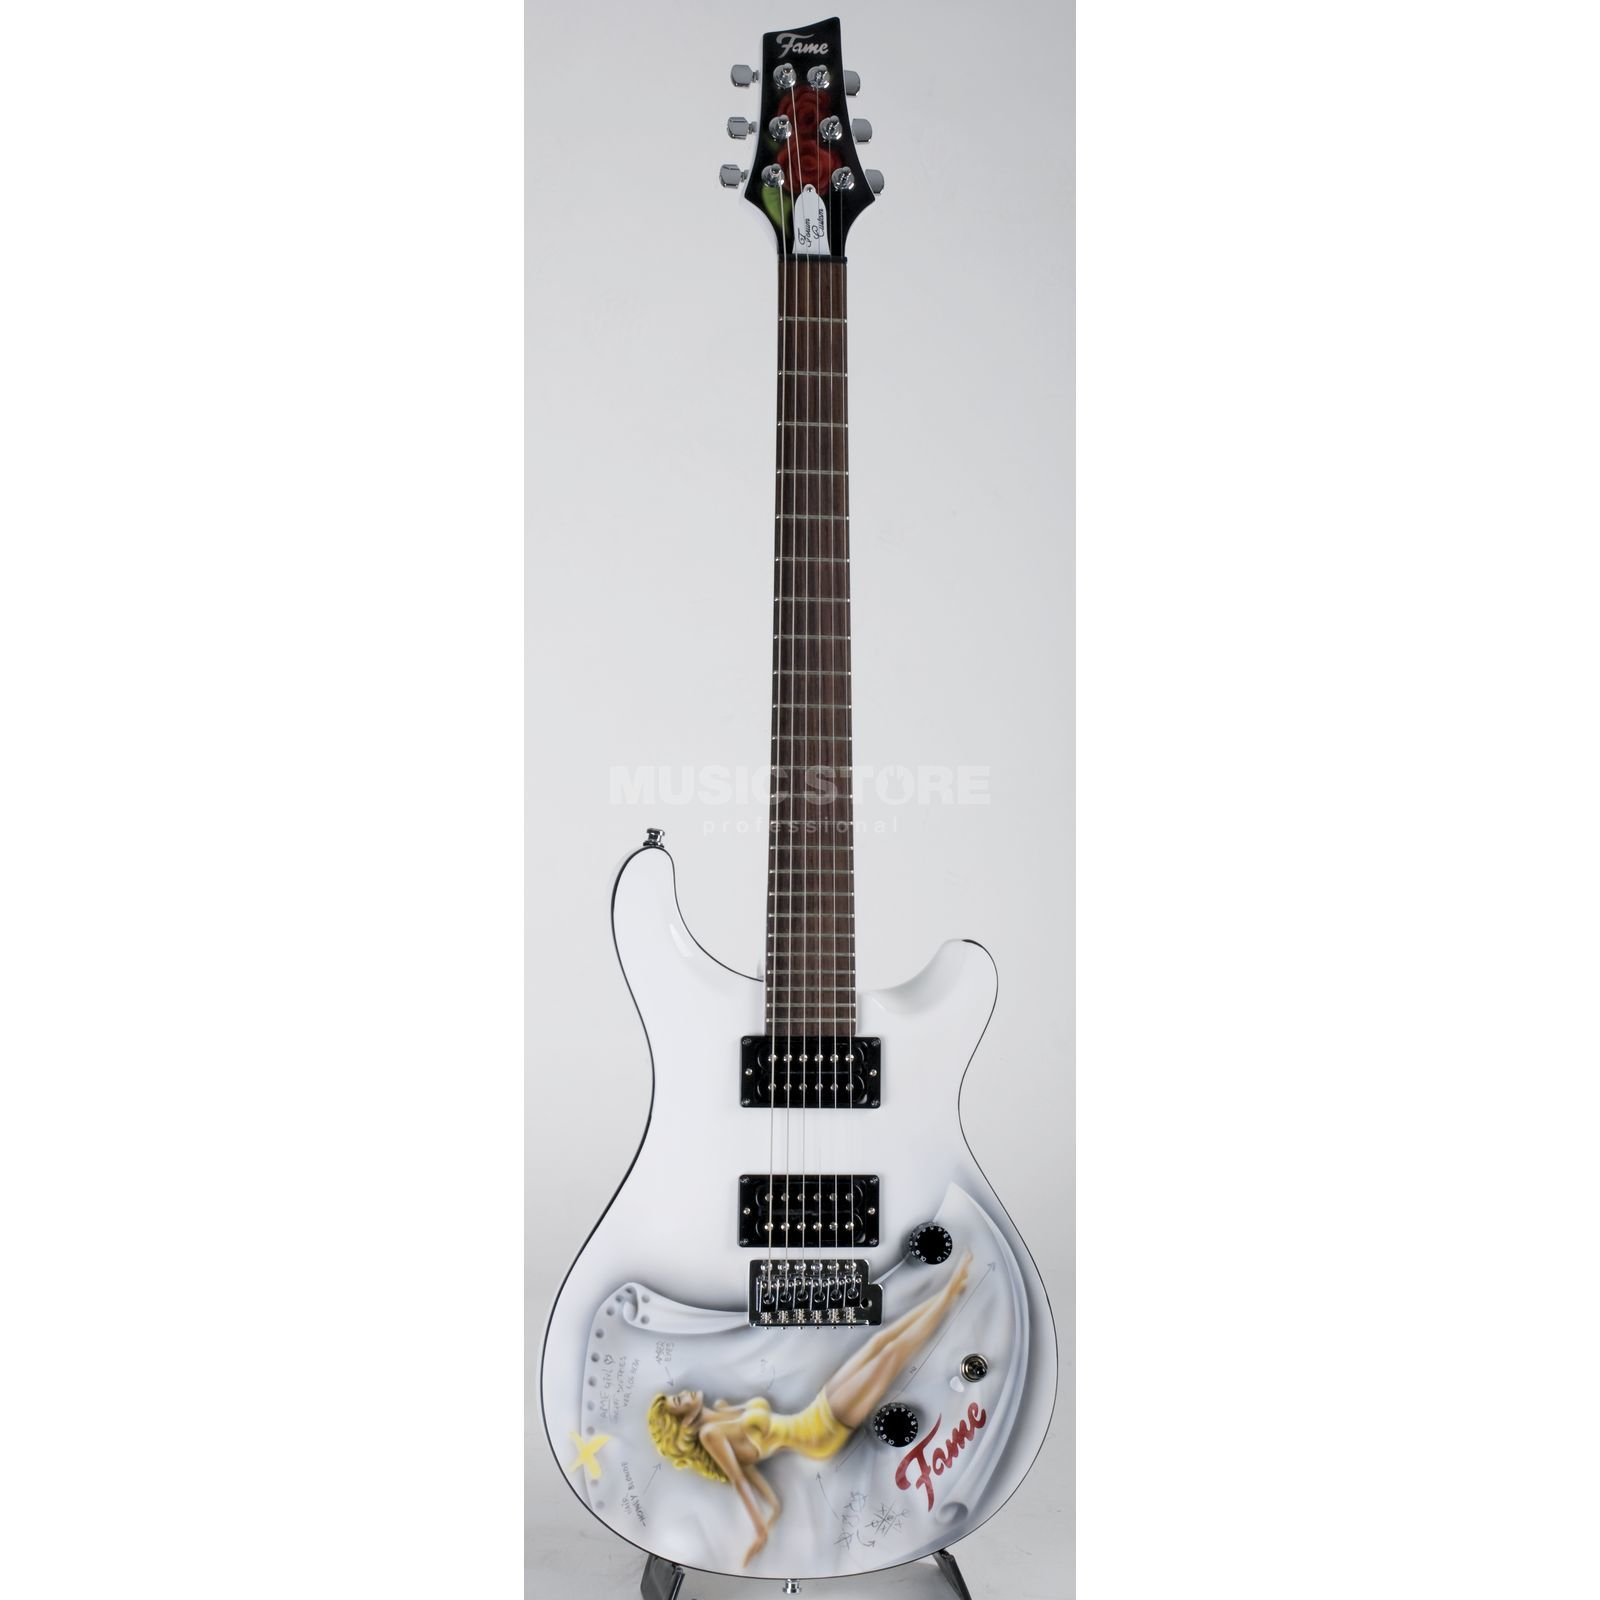 Fame CS Forum III Airbrush Girl White Produktbillede